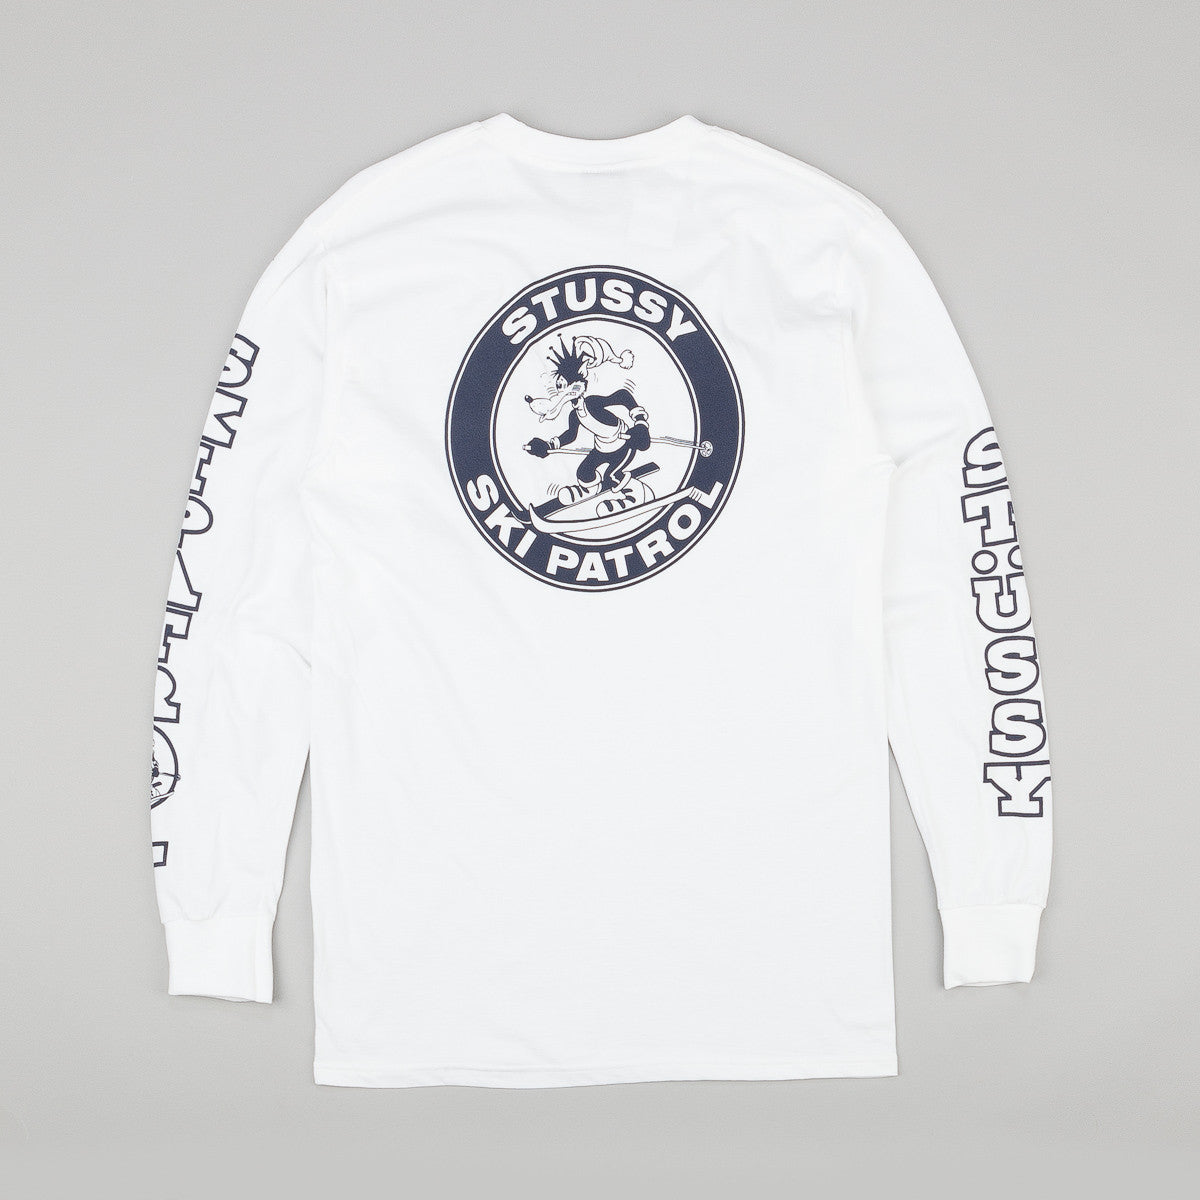 Stussy Ski Patrol Long Sleeve T-Shirt - White